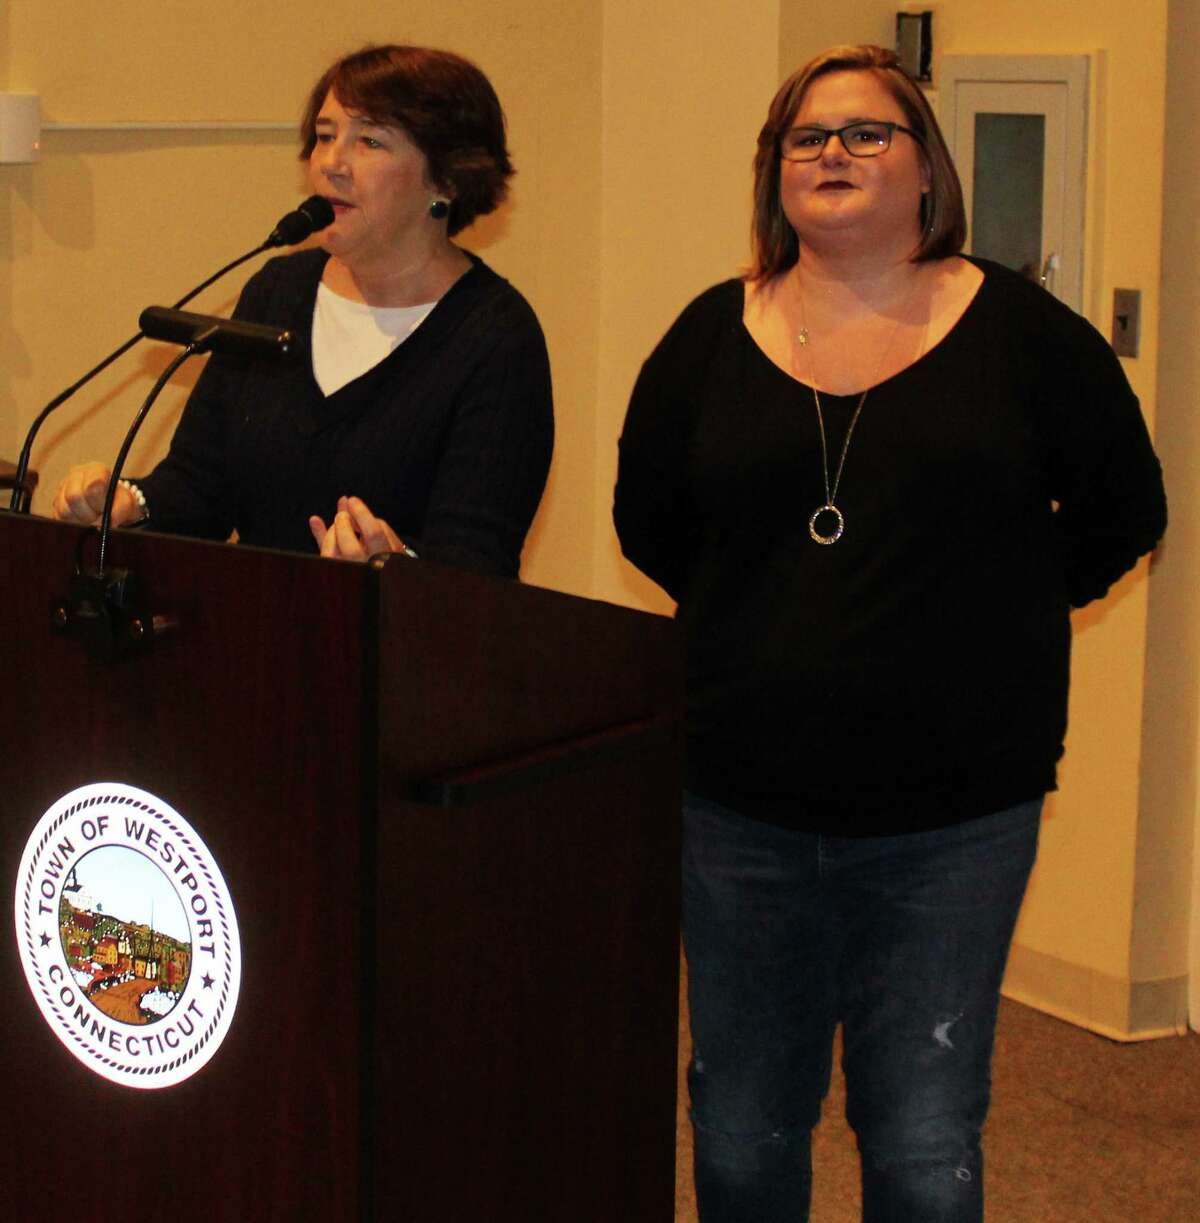 Westport resident Patty Haberstroh spoke at the April 3 Representative Town Meeting in Town Hall about the ALS hot pepper challenge next to her daughter, Kim Haberstroh.